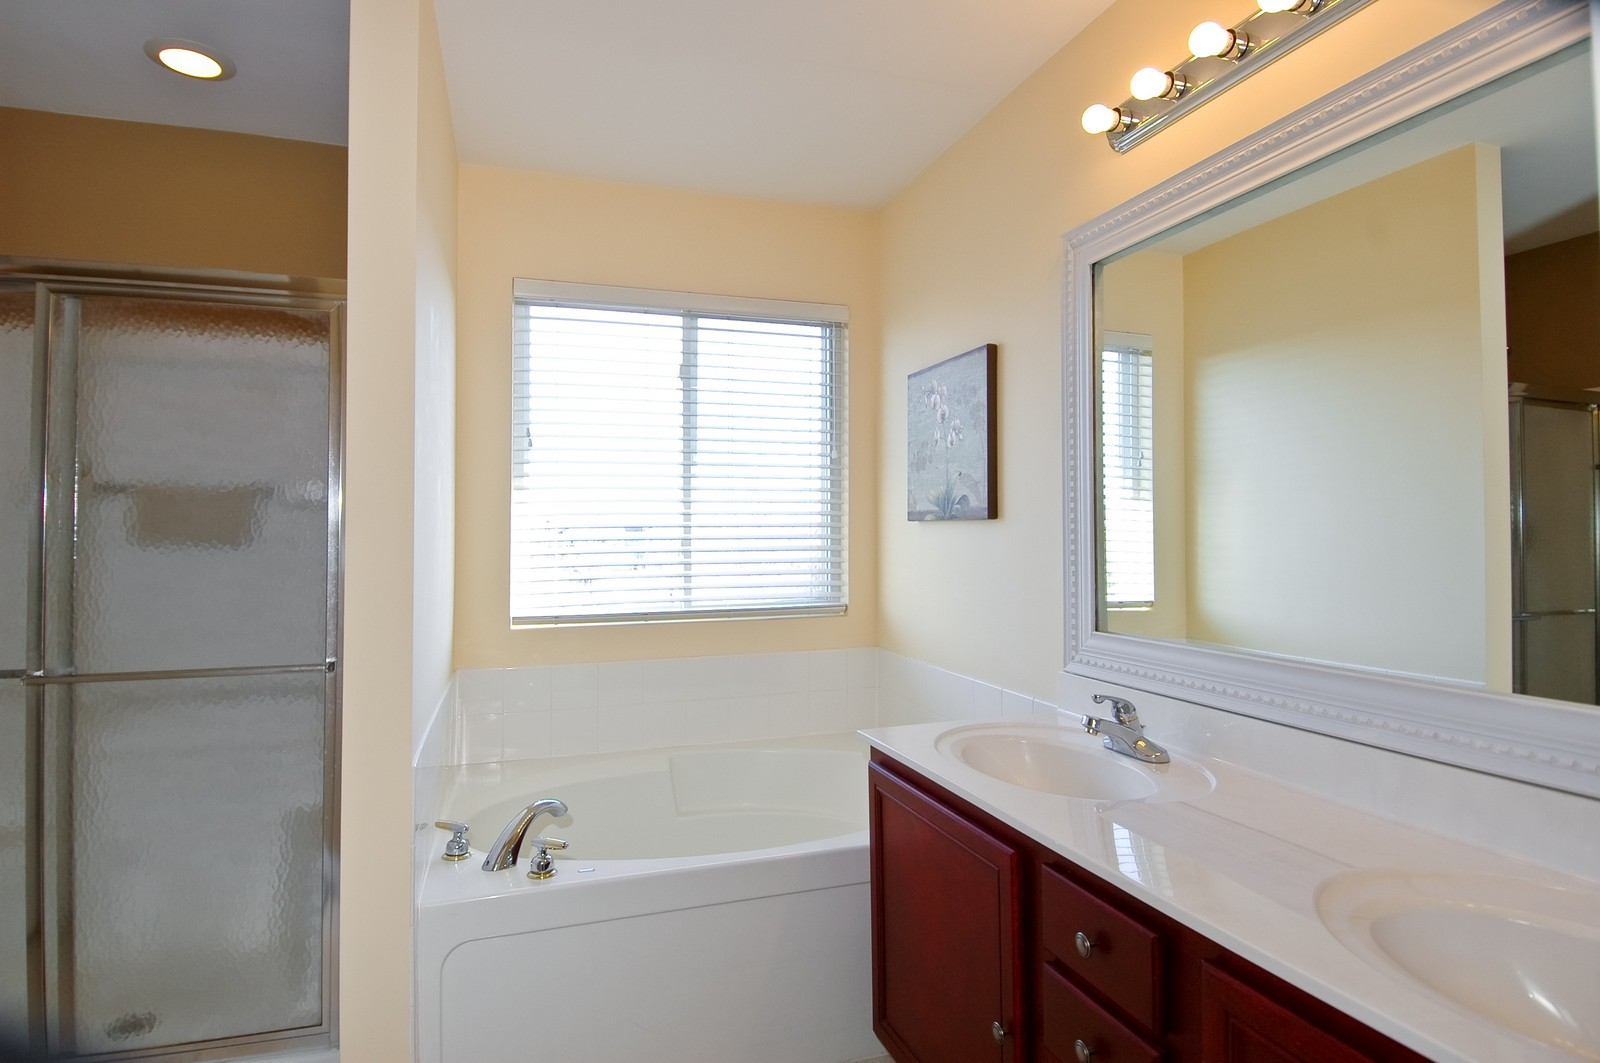 Real Estate Photography - 425 N Carlisle Ct, Round Lake, IL, 60073 - Master Bathroom